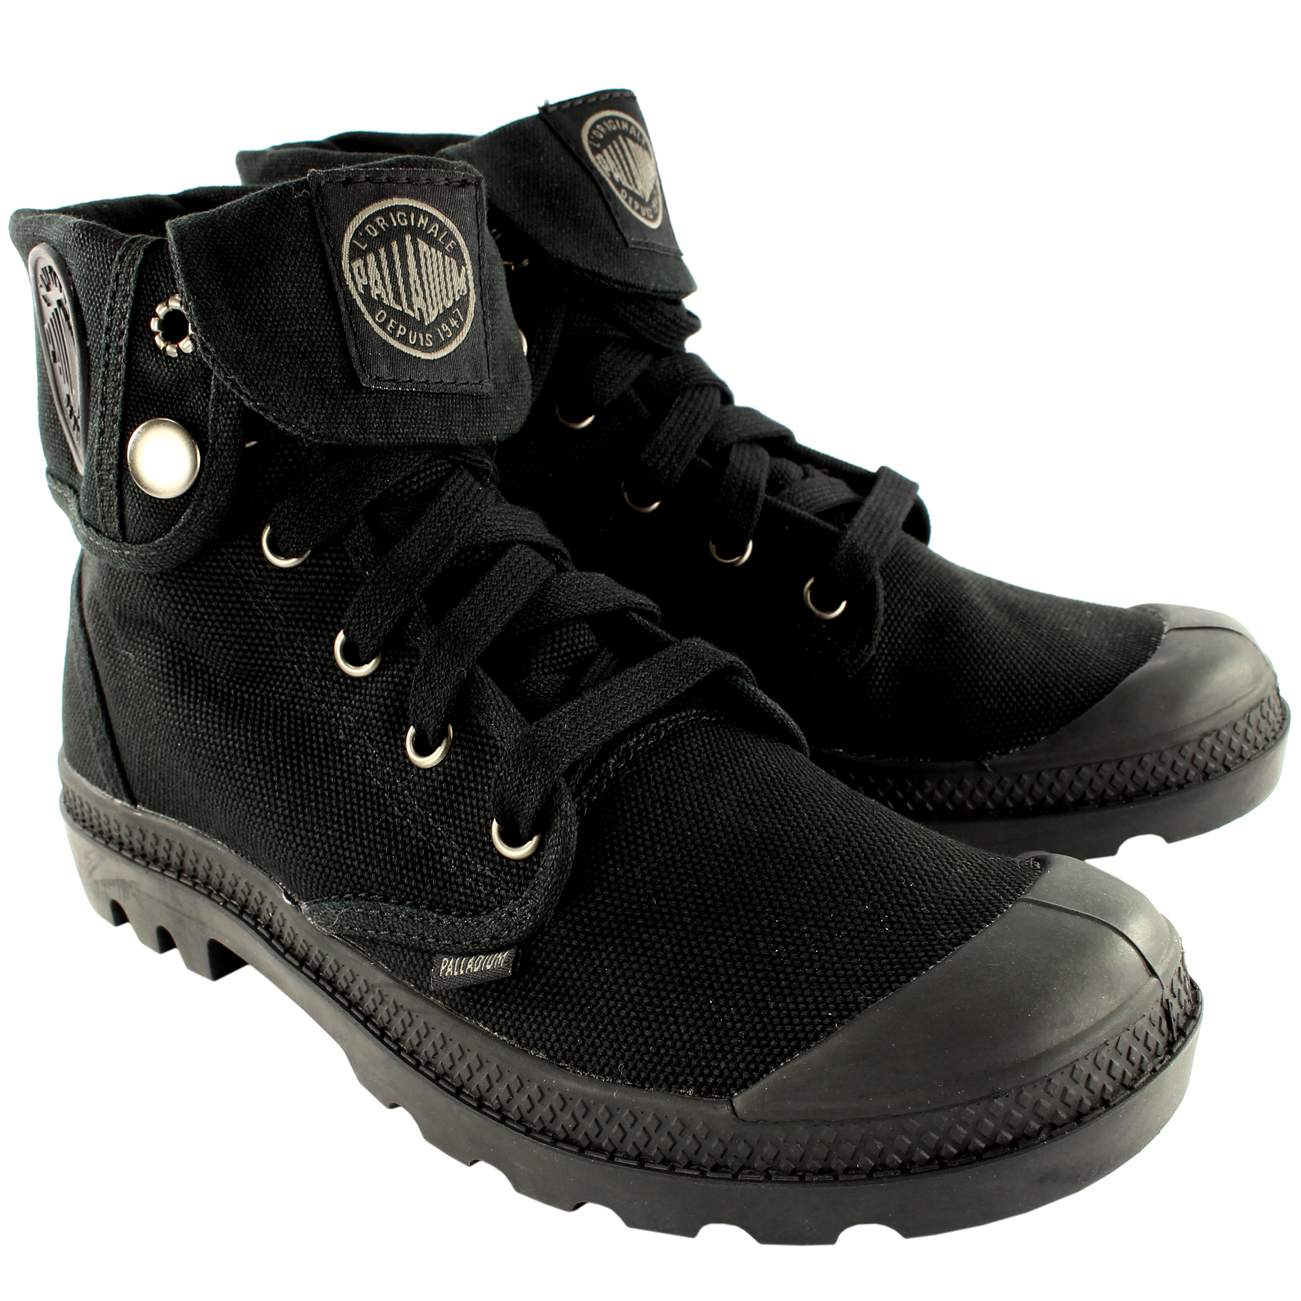 Palladium Baggy Ankle High Boots